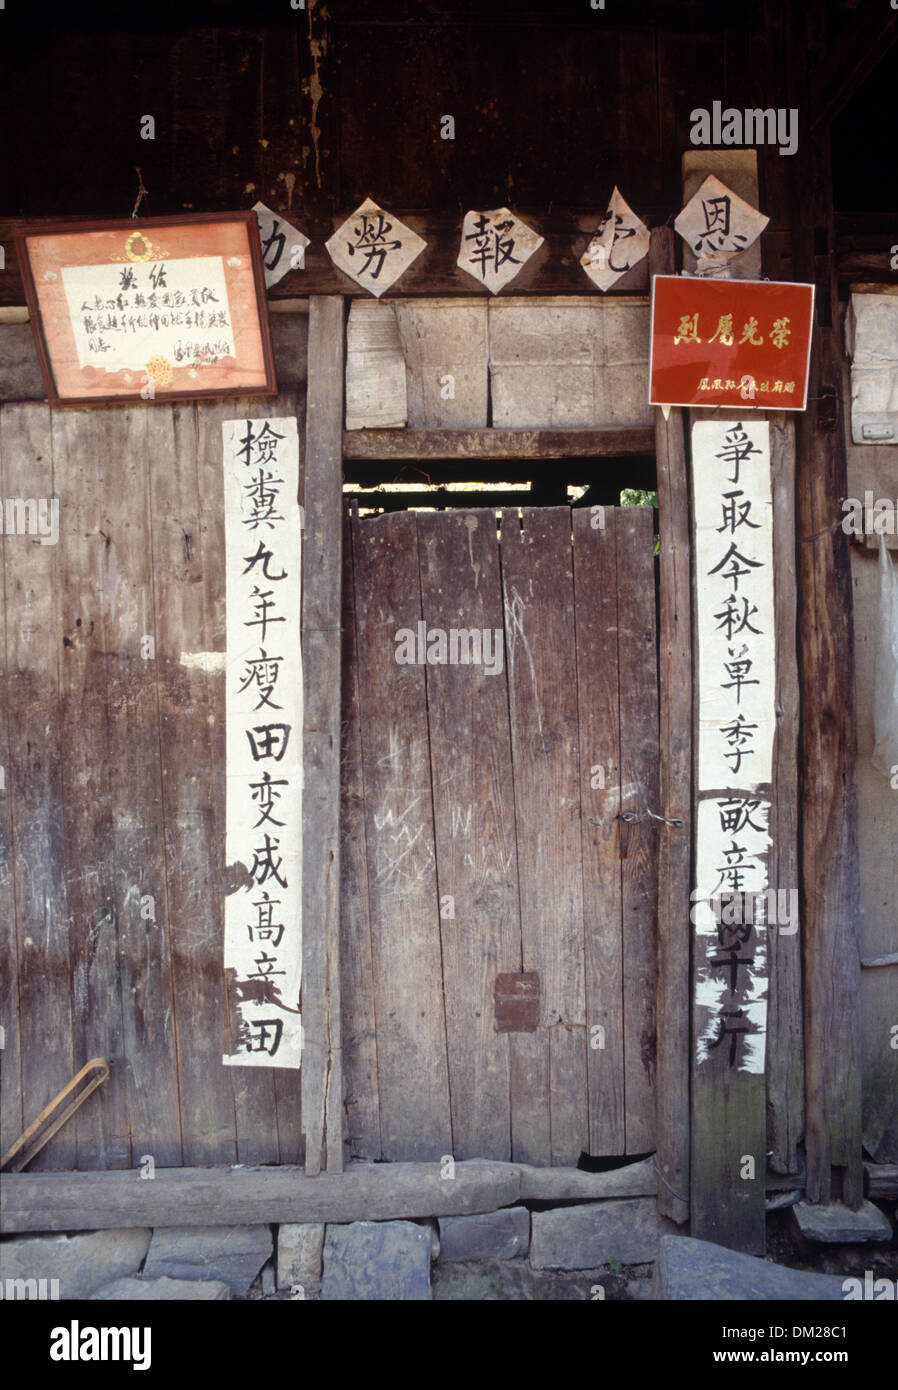 The door of a poor farm house with wordings praising the power of physical labour in Hunan Province, China - Stock Image